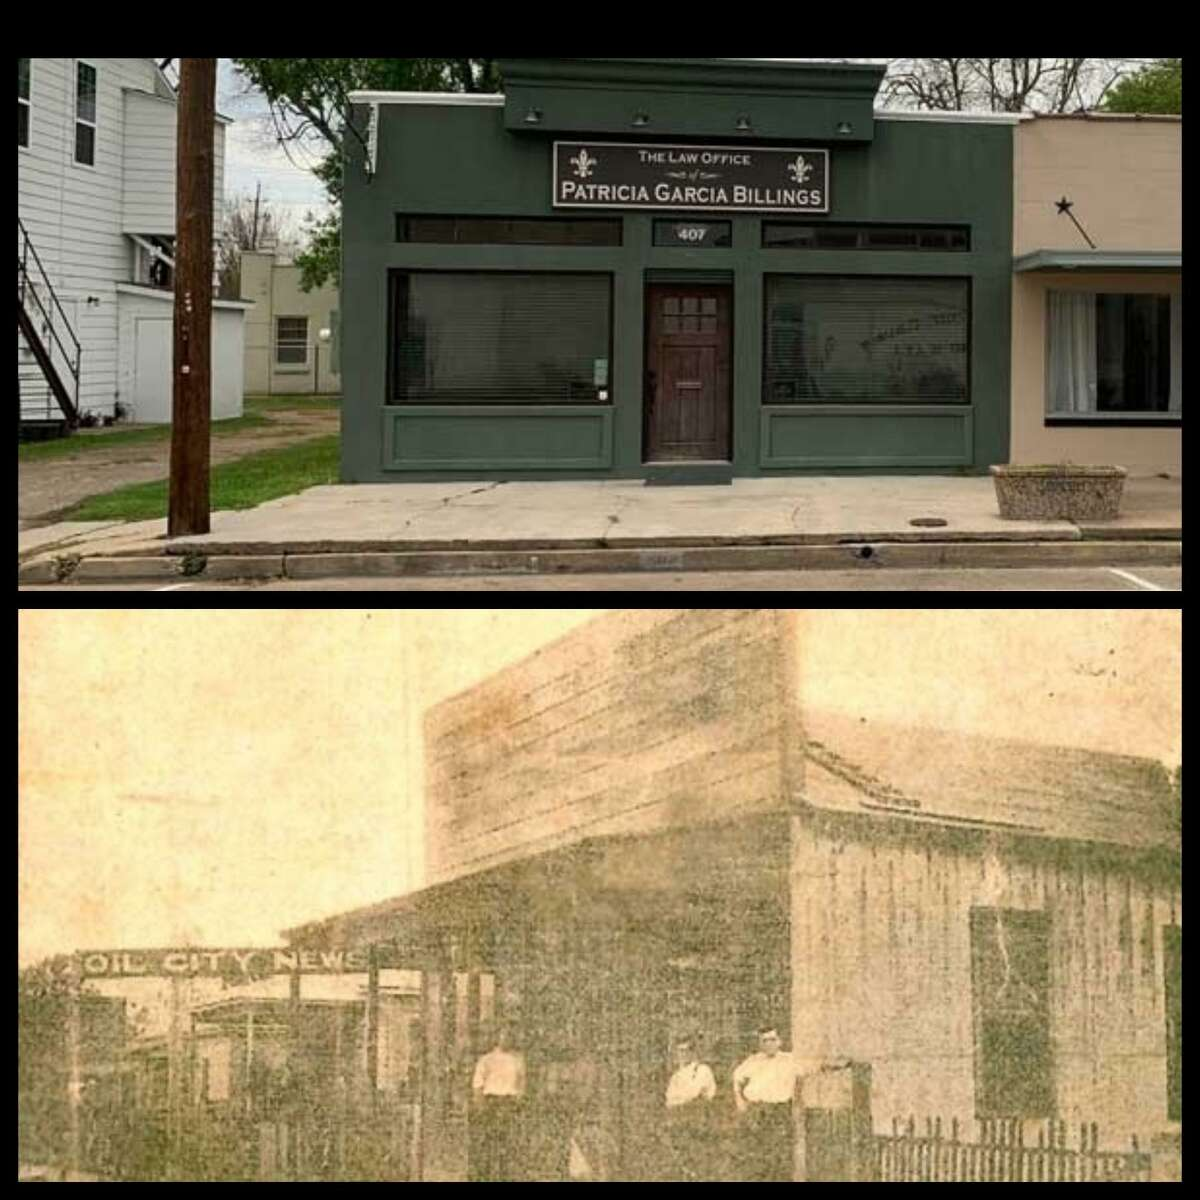 Oil City News, located on Main Street, was the official City of Humble newspaper back in the early 1900's.